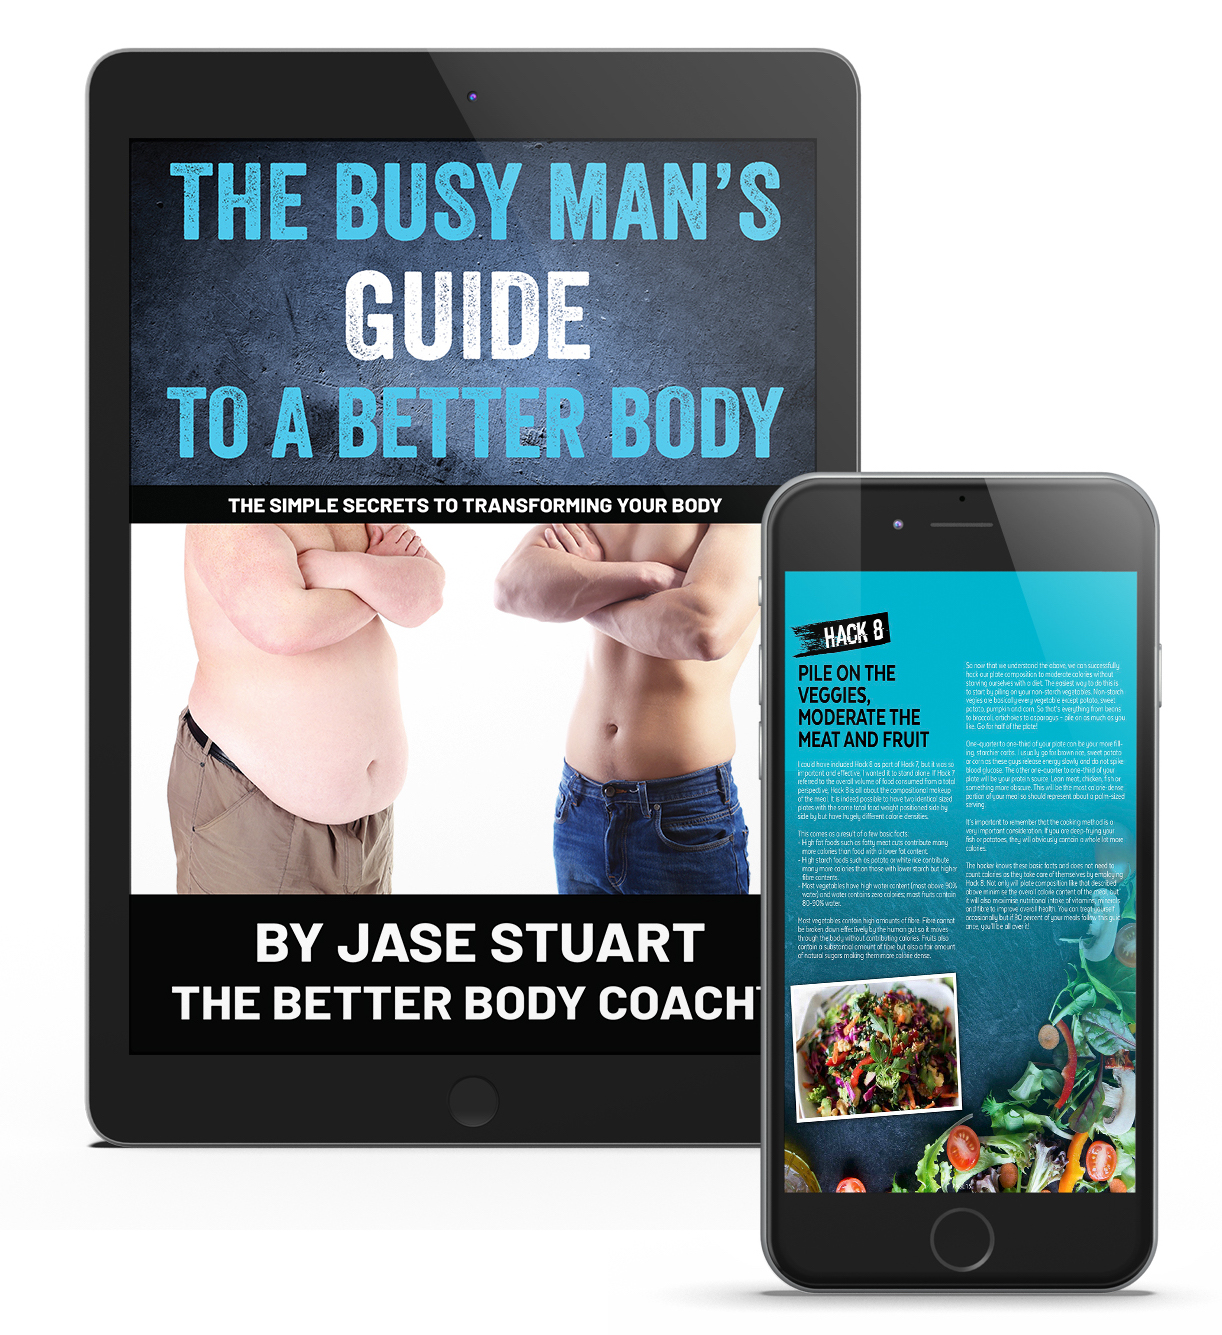 Busy Man's Guide To A Better Body